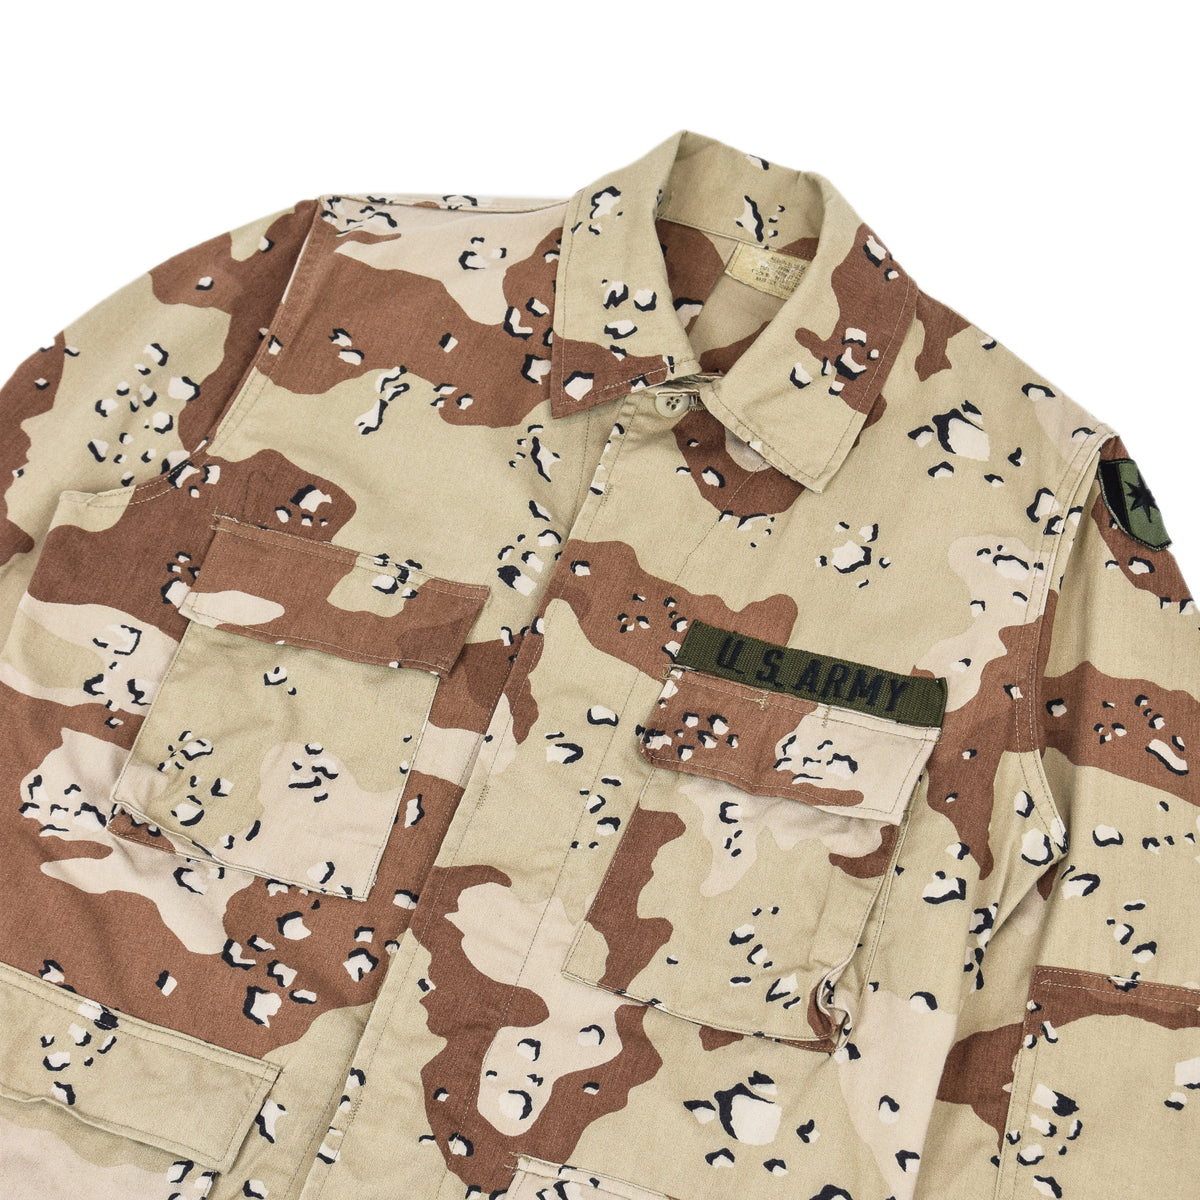 Vintage 80s US Army Choc Chip Desert Camo BDU Combat Coat Field Jacket M chest